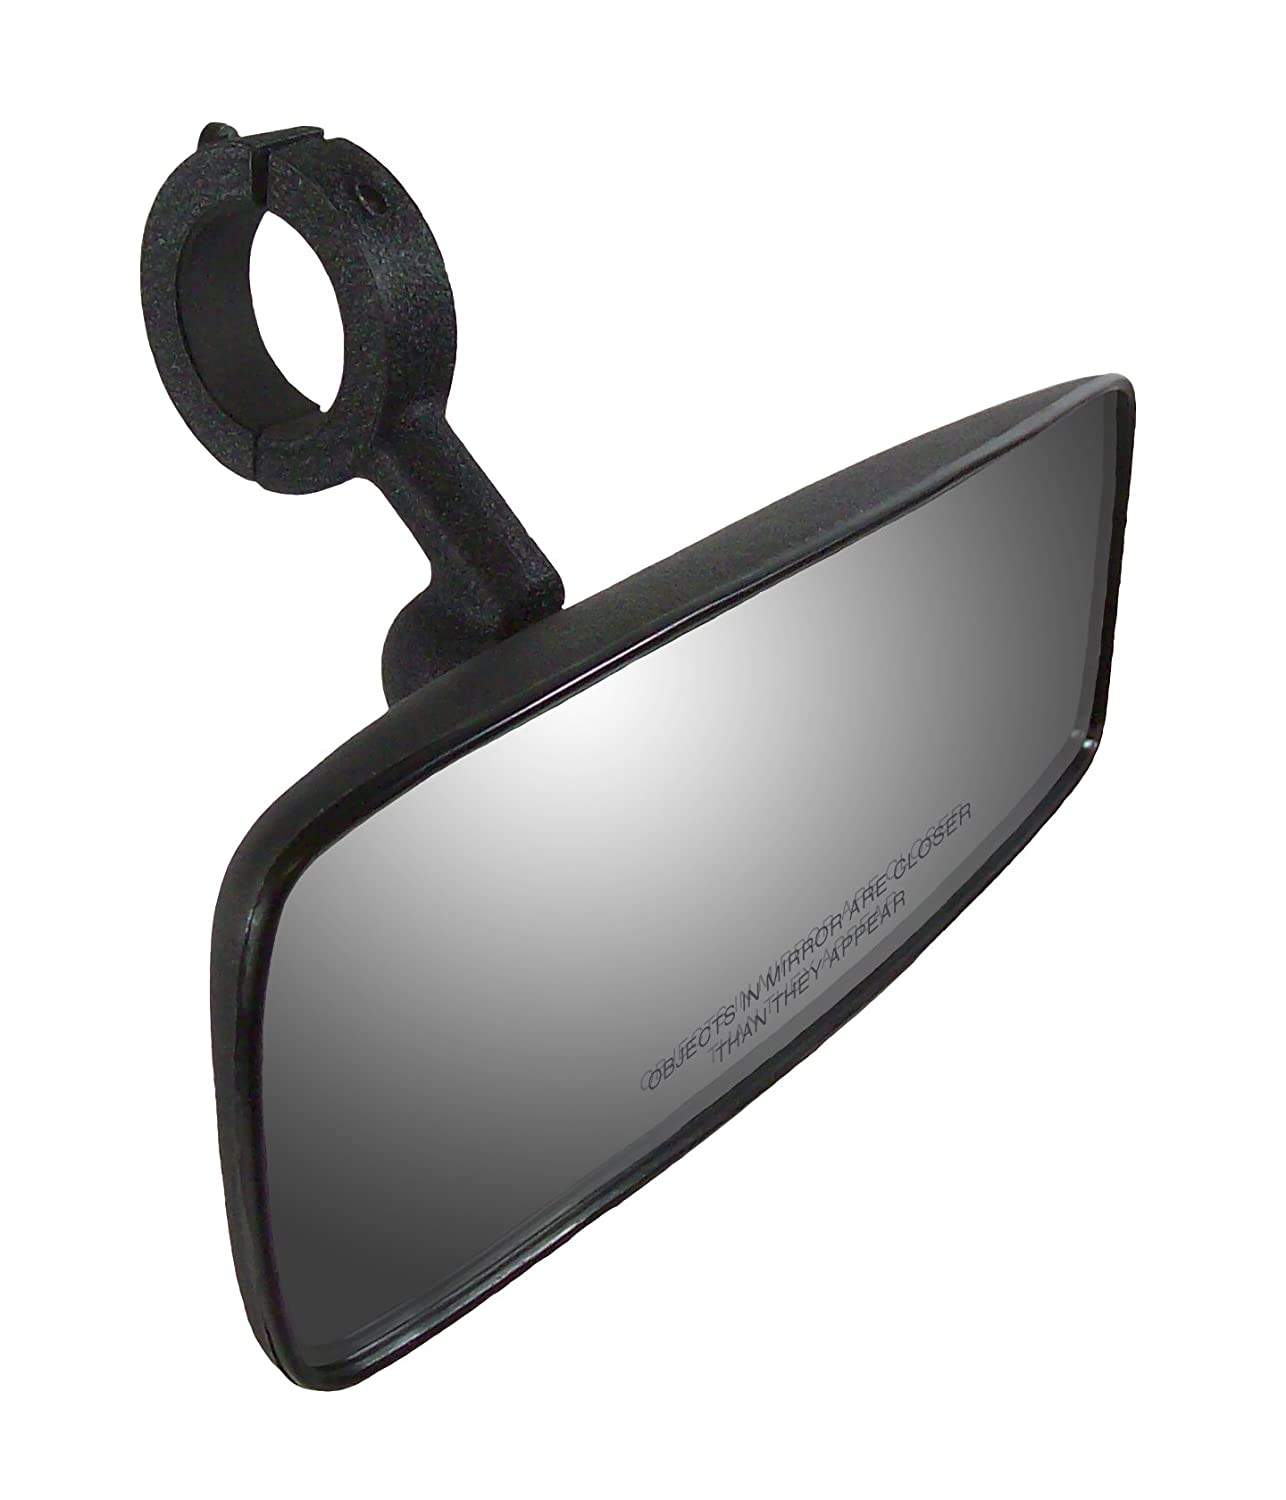 CIPA 99287 UTV Deluxe Rearview Mirror Cipa USA